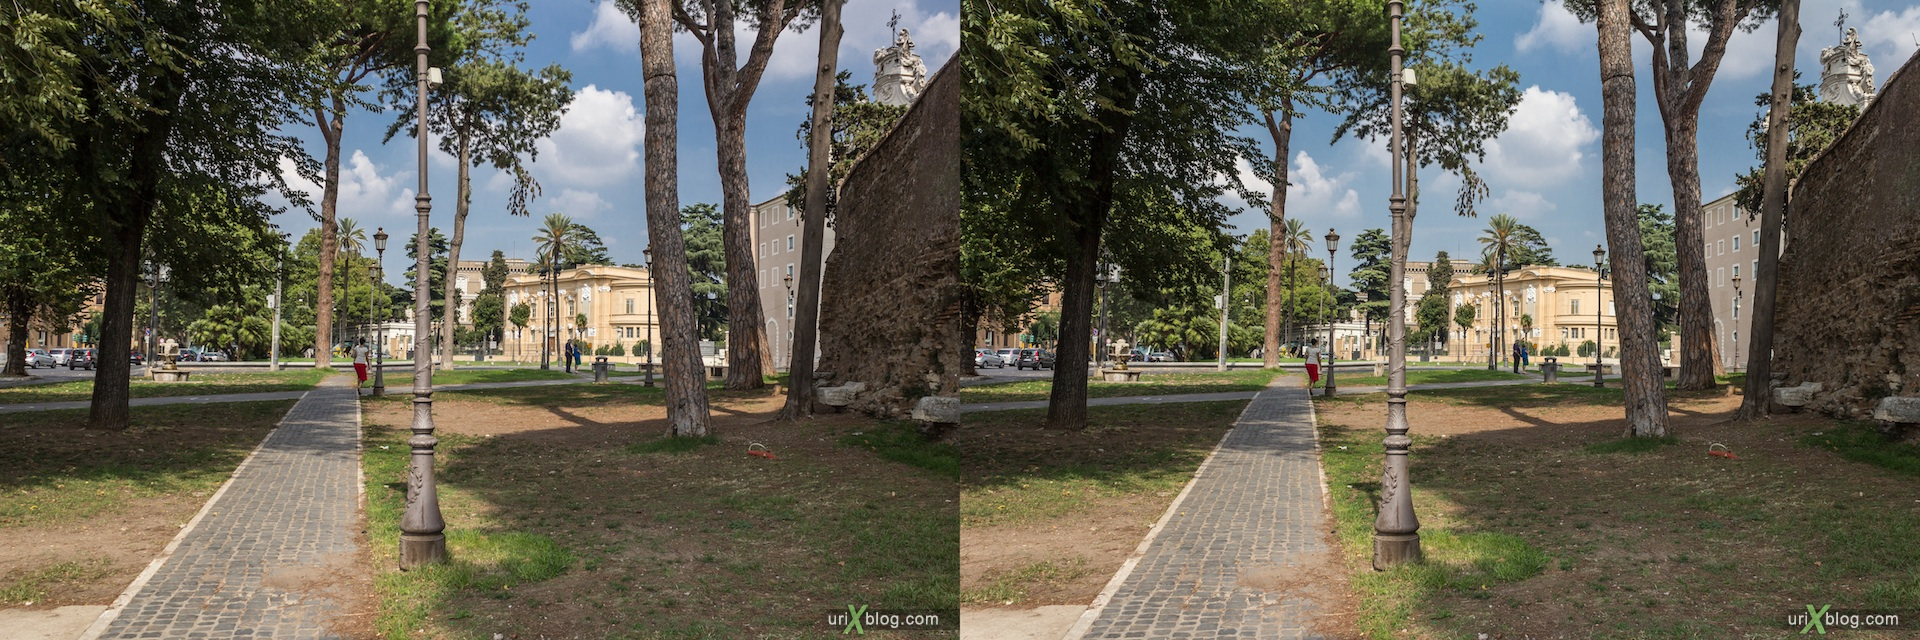 2012, Santa Croce in Gerusalemme church, square, Amphitheatrum Castrense, 3D, stereo pair, cross-eyed, crossview, cross view stereo pair